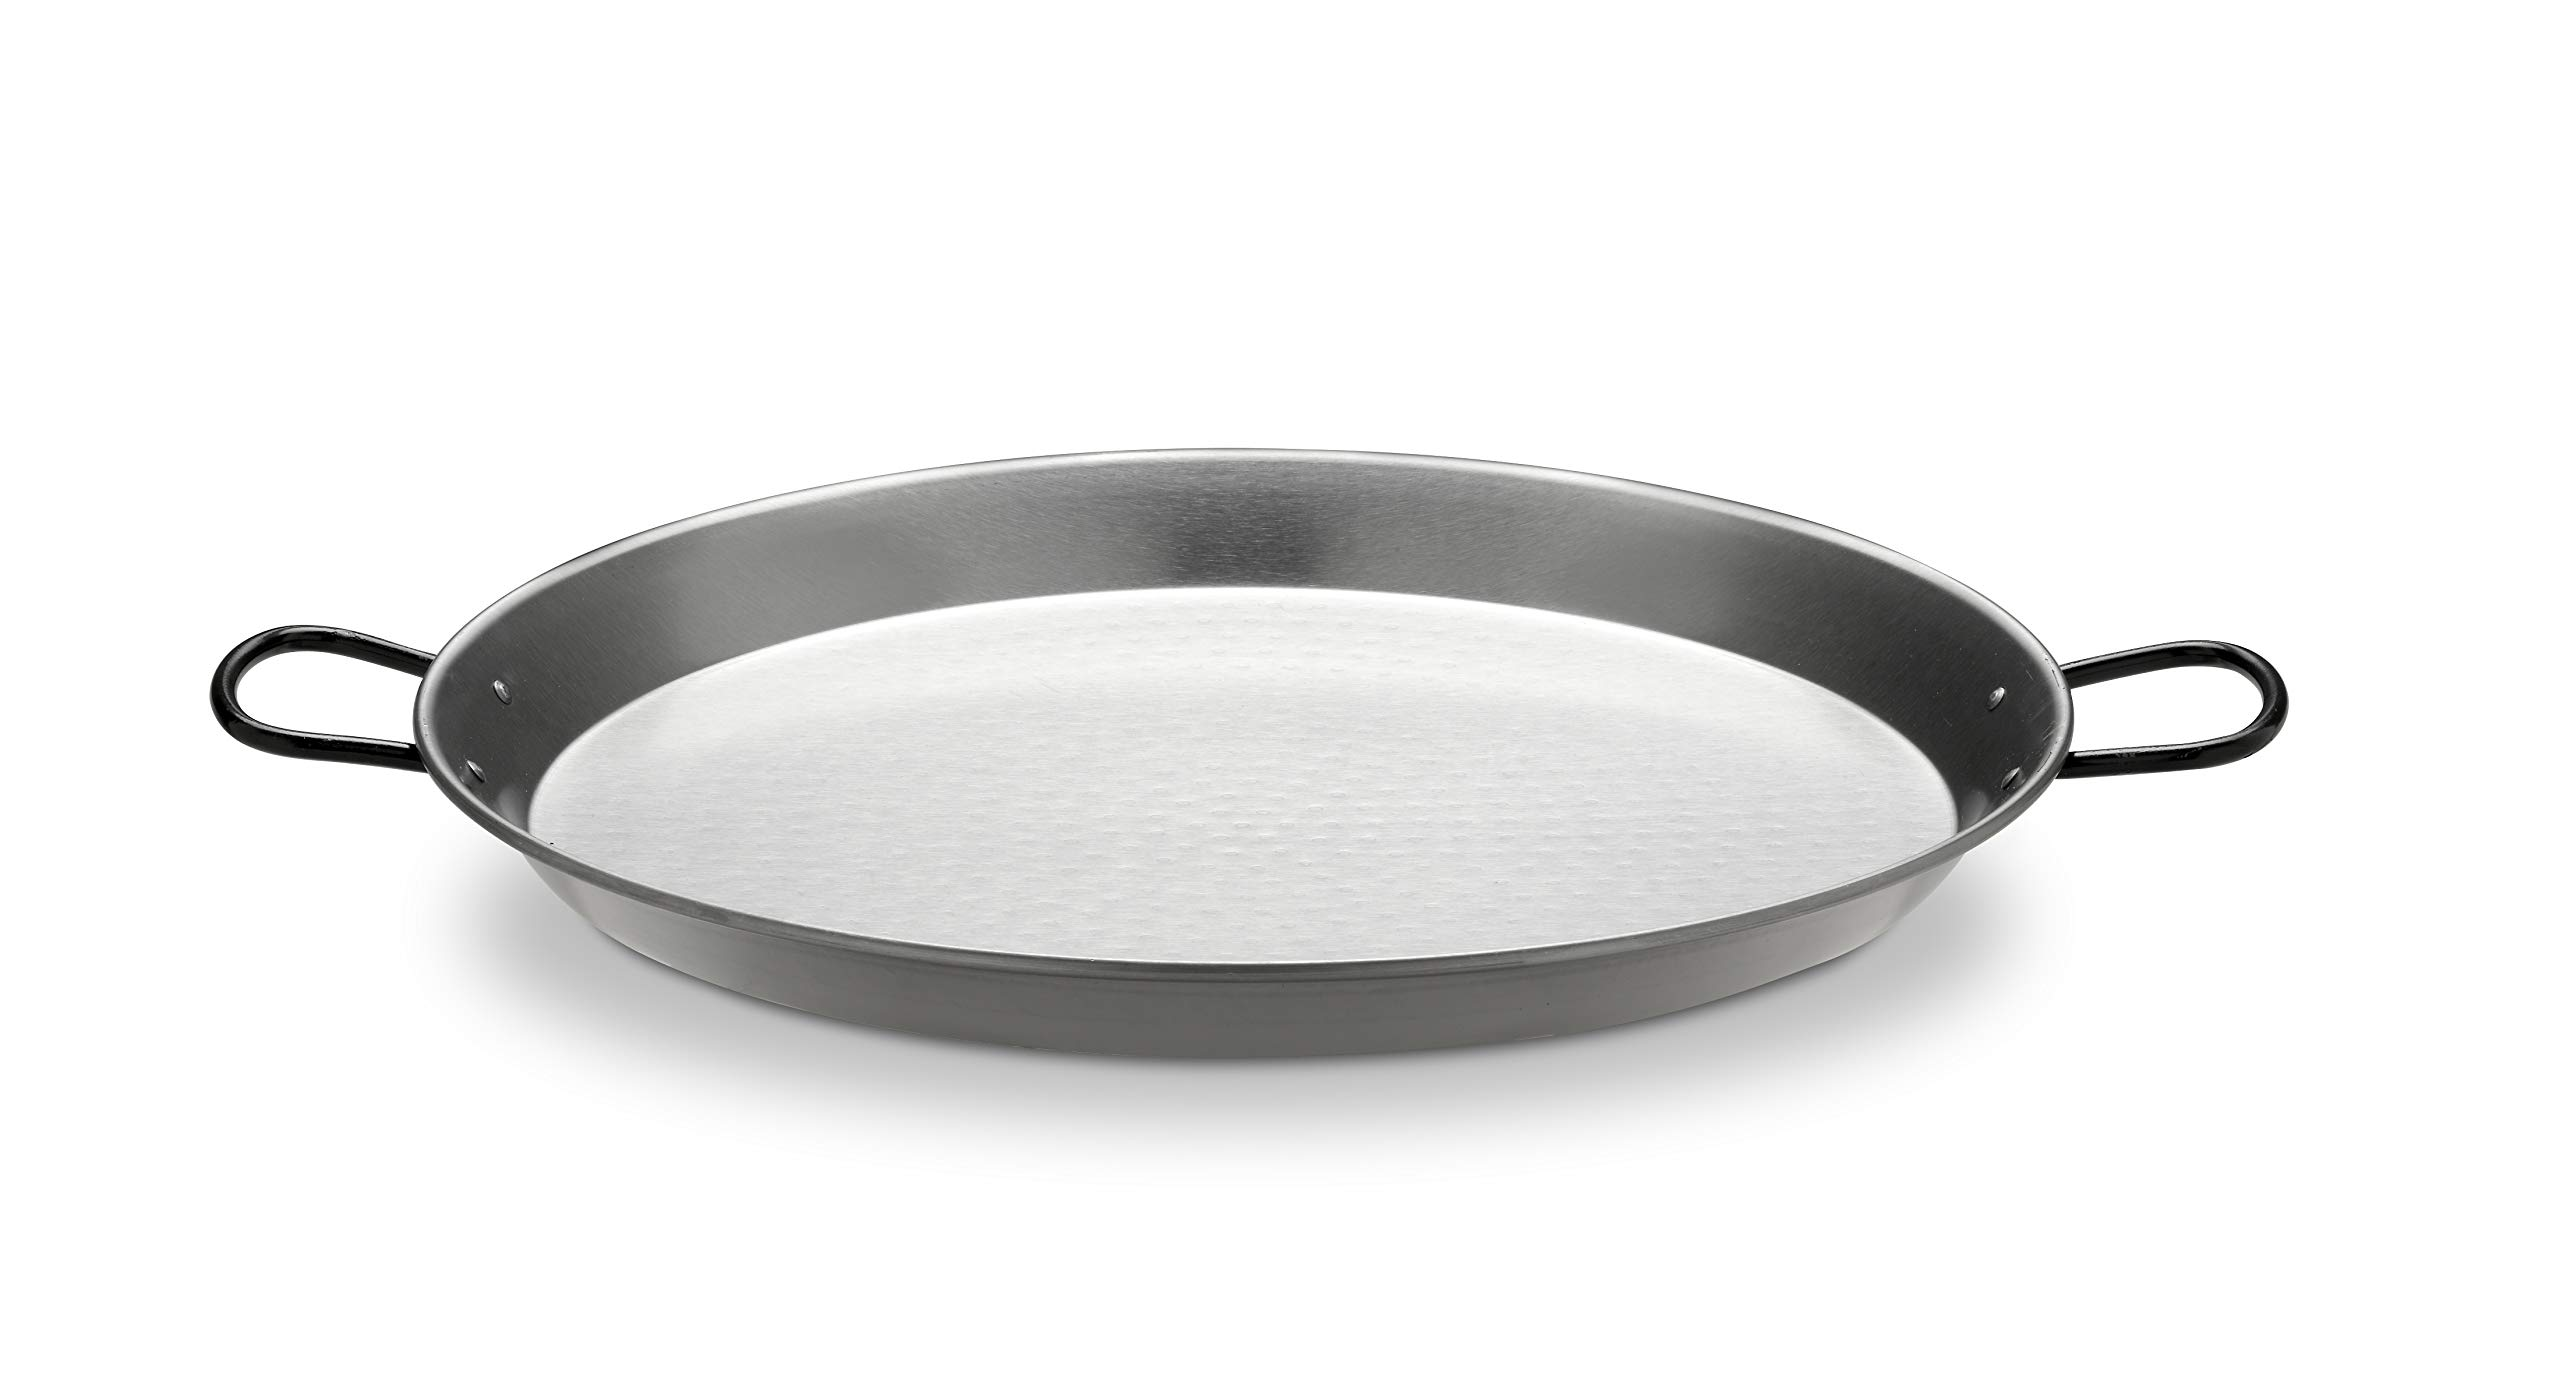 Polished Steel Valencian paella pan 26Inch / 65cm / 25 Servings